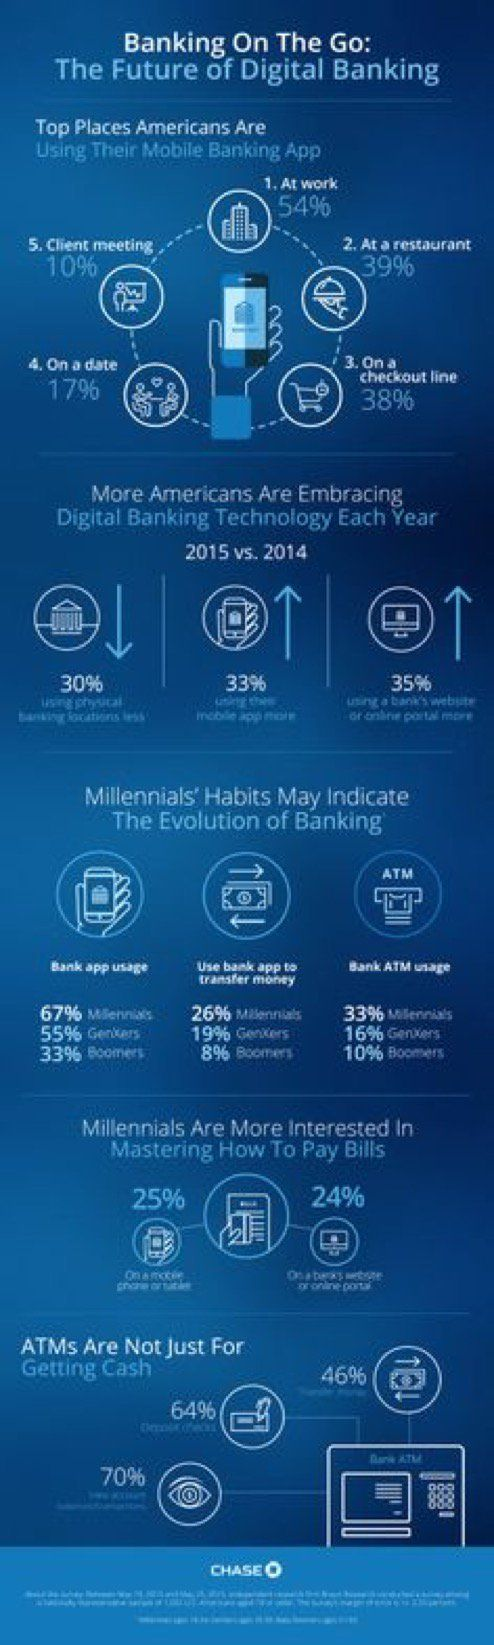 The future of Digital Banking.